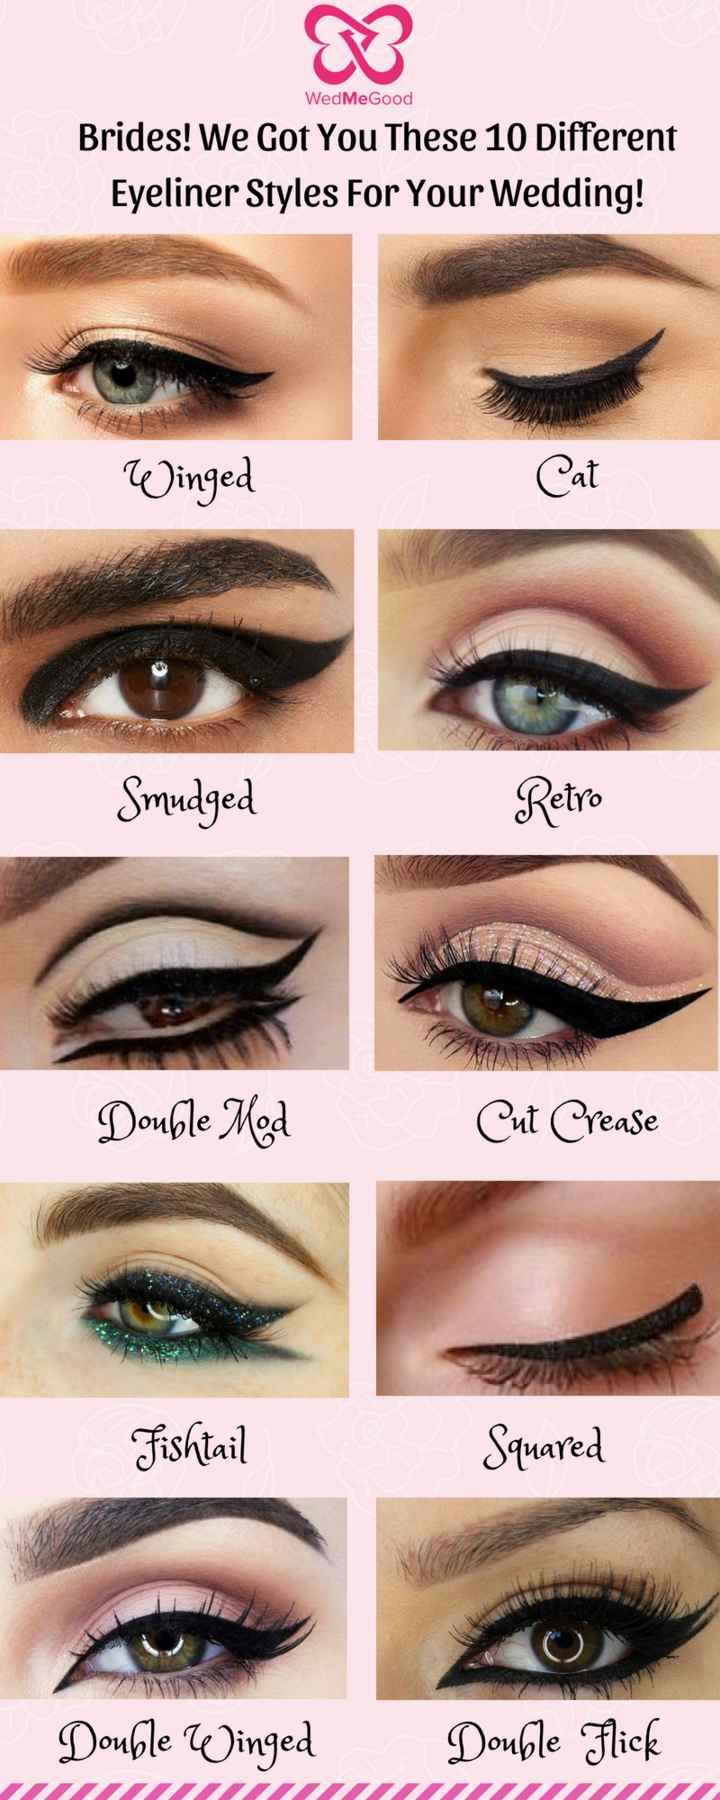 👀ब्यूटीफुल आई लाइनर - WedMeGood Brides ! We Got You These 10 Different Eyeliner Styles For Your Wedding ! Winged Cat Smudged Retro Double Med Cut Crease Fishtail Squared Double Winged Double Flick - ShareChat